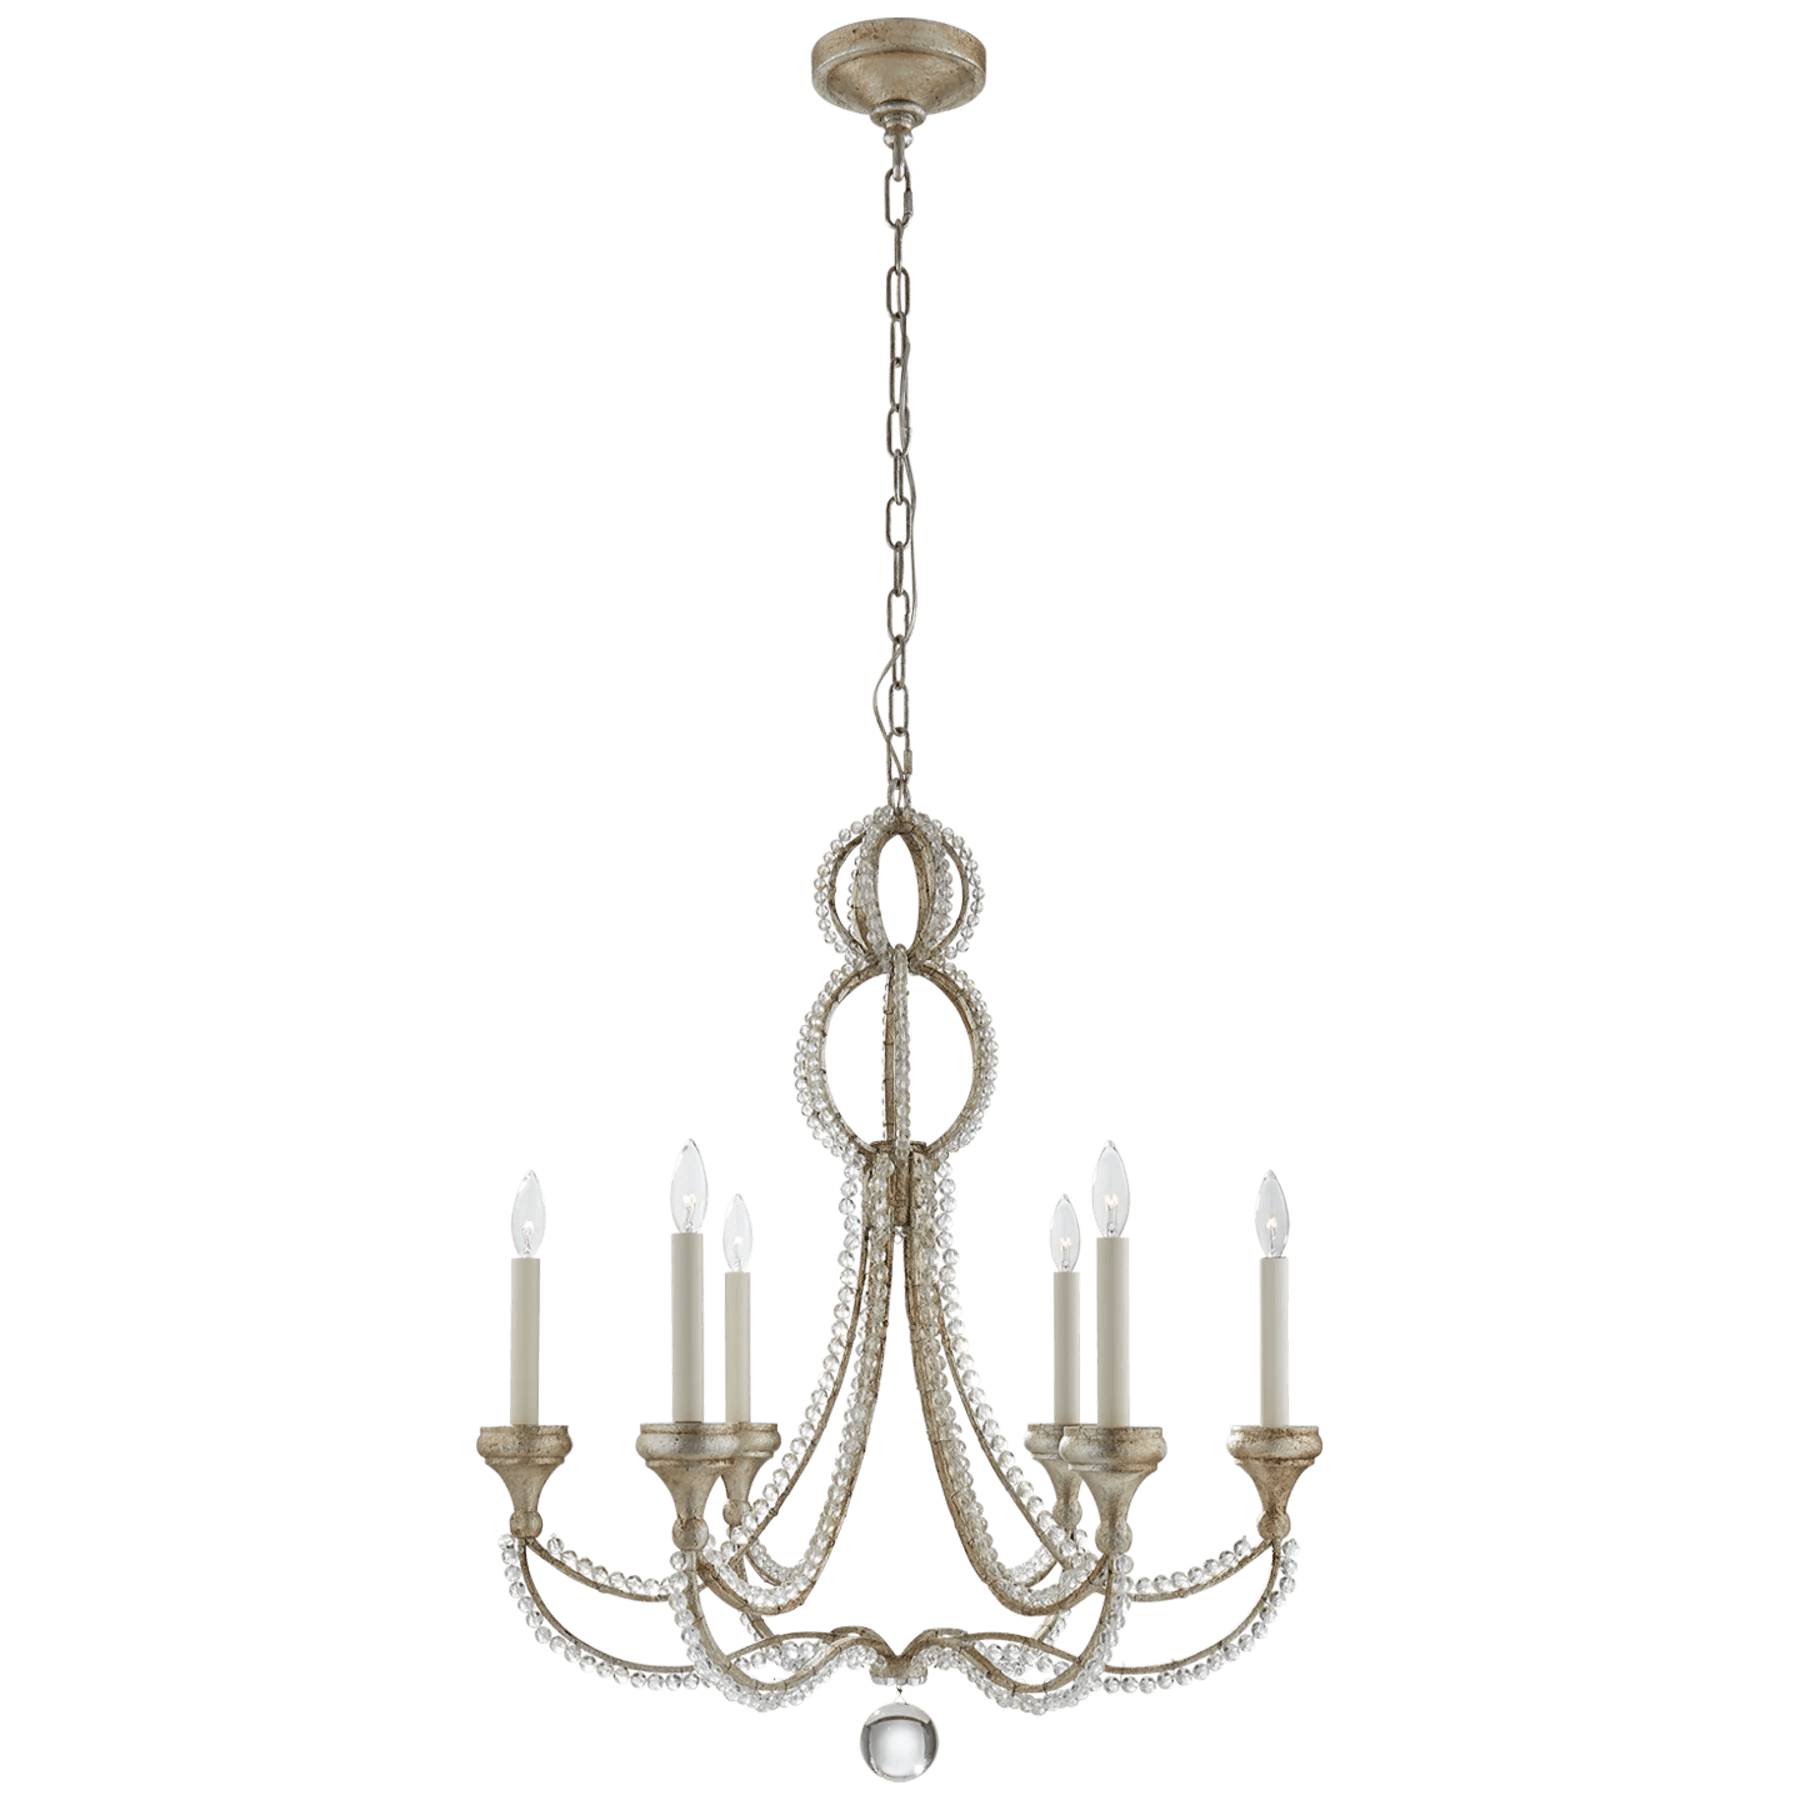 Milan Medium Chandelier